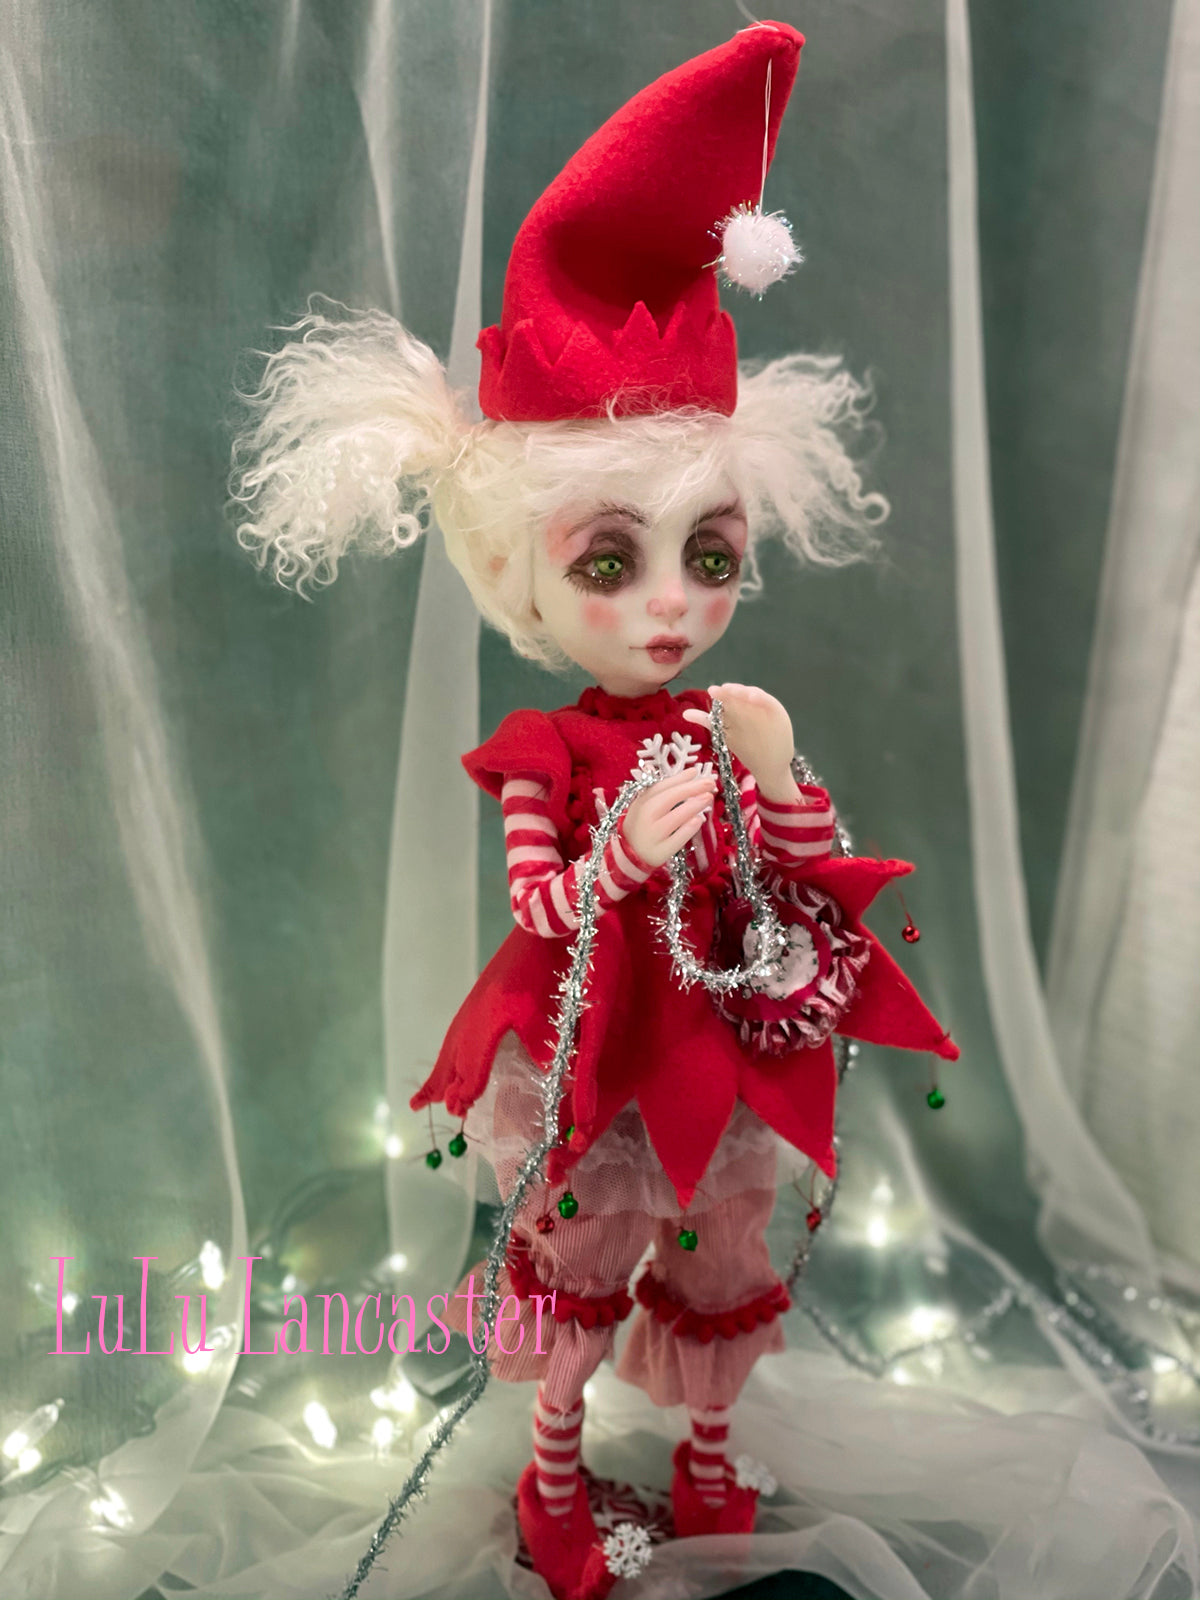 Pix SugarSnap the Christmas Elf Original LuLu Lancaster Art Doll